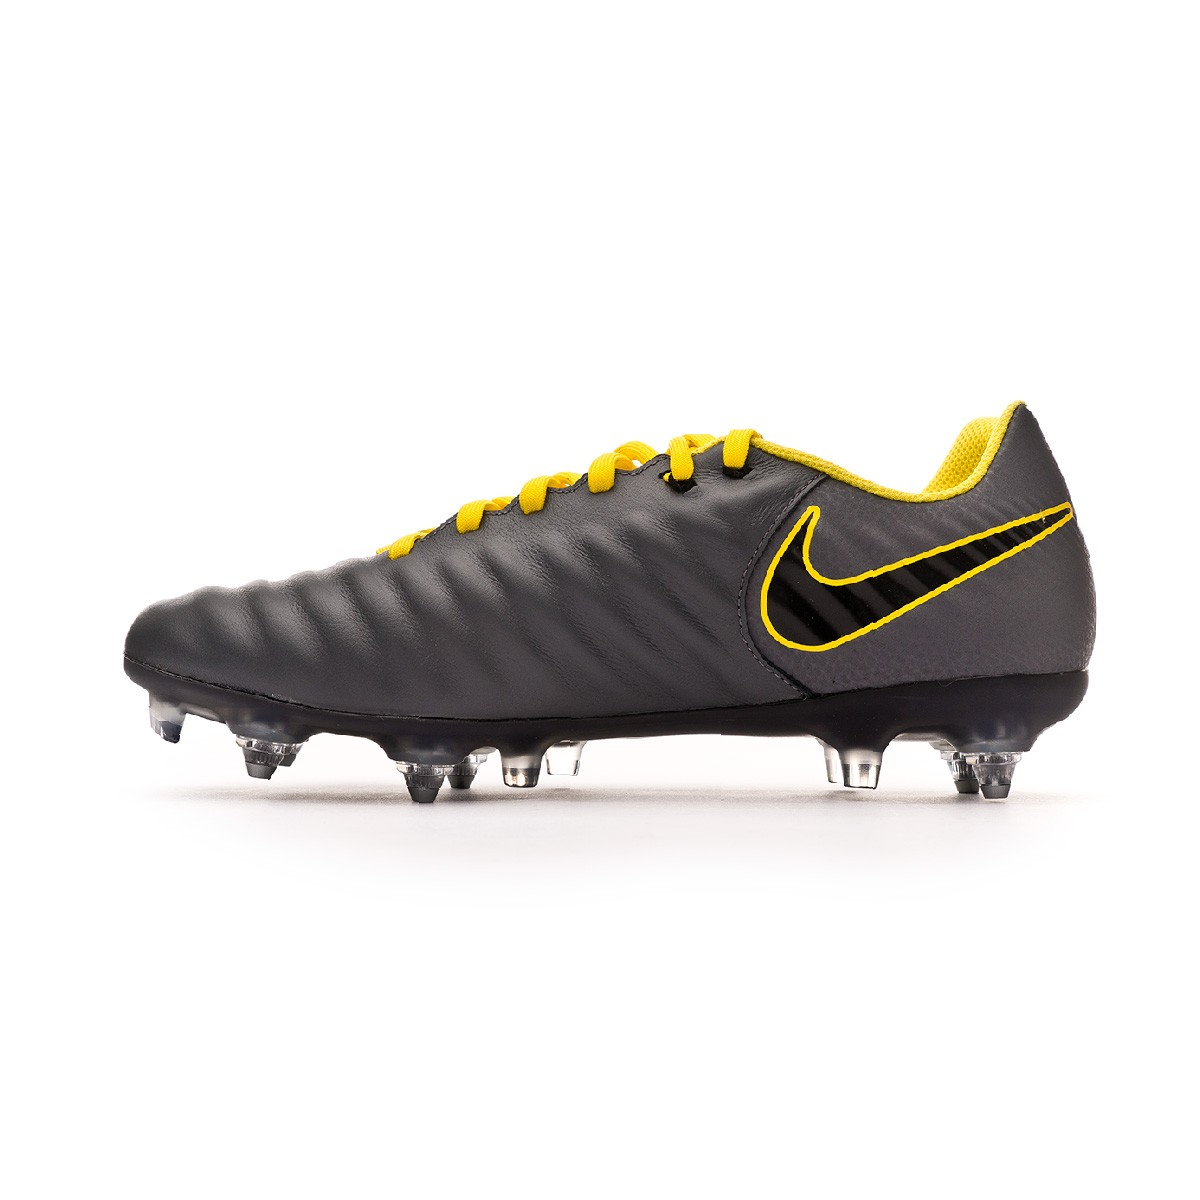 Nike Tiempo Legend VII Academy SG-Pro ACC Football Boots